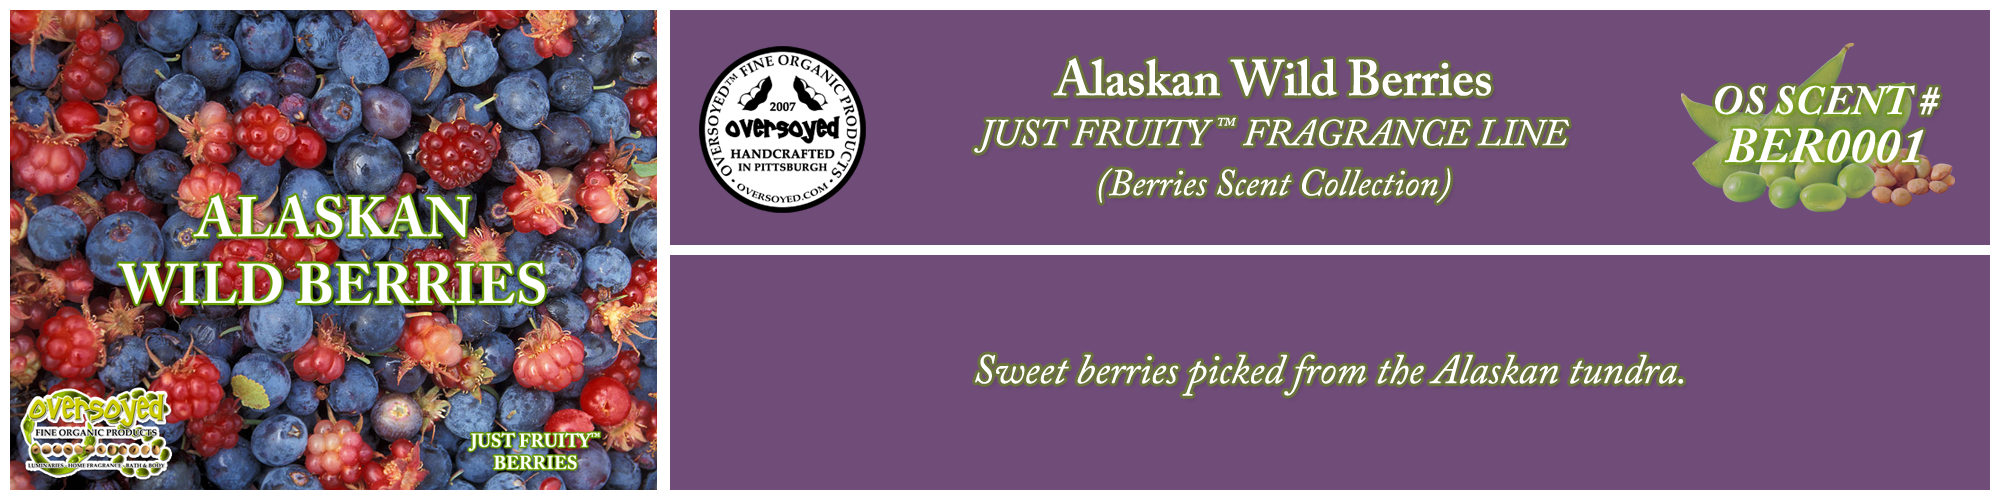 Alaskan Wild Berries Handcrafted Products Collection